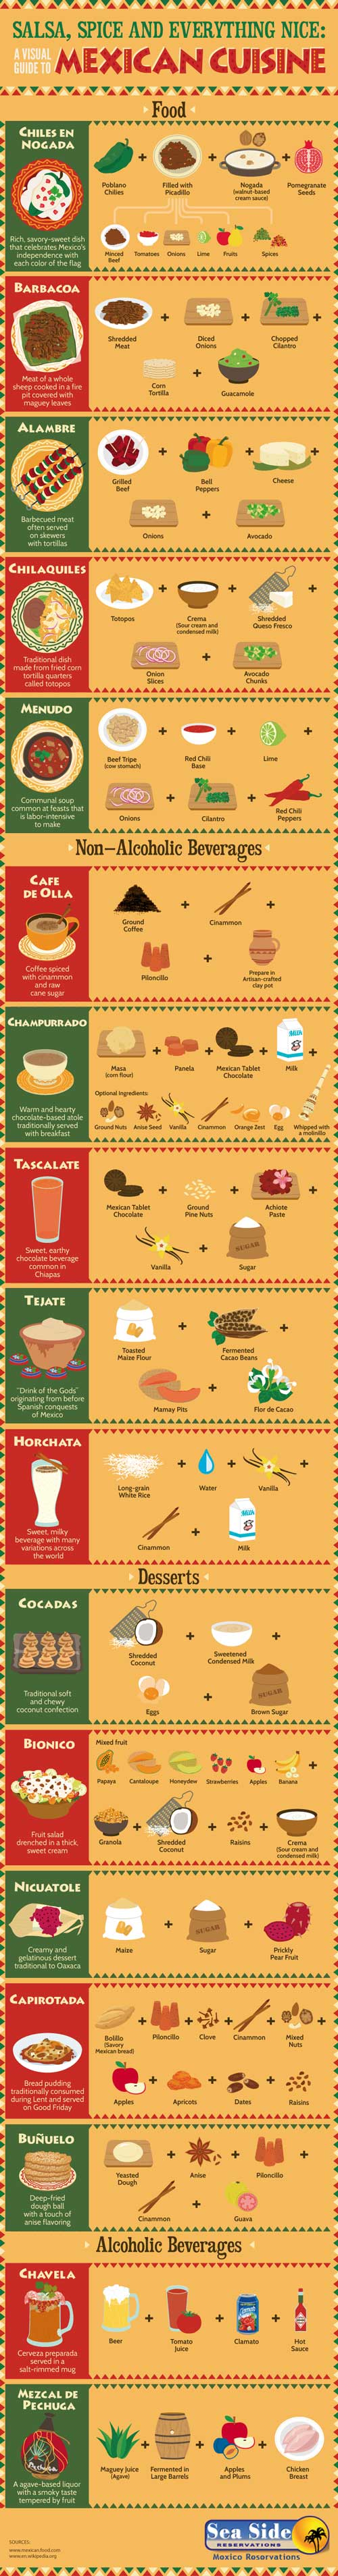 mexicnan-food-guide